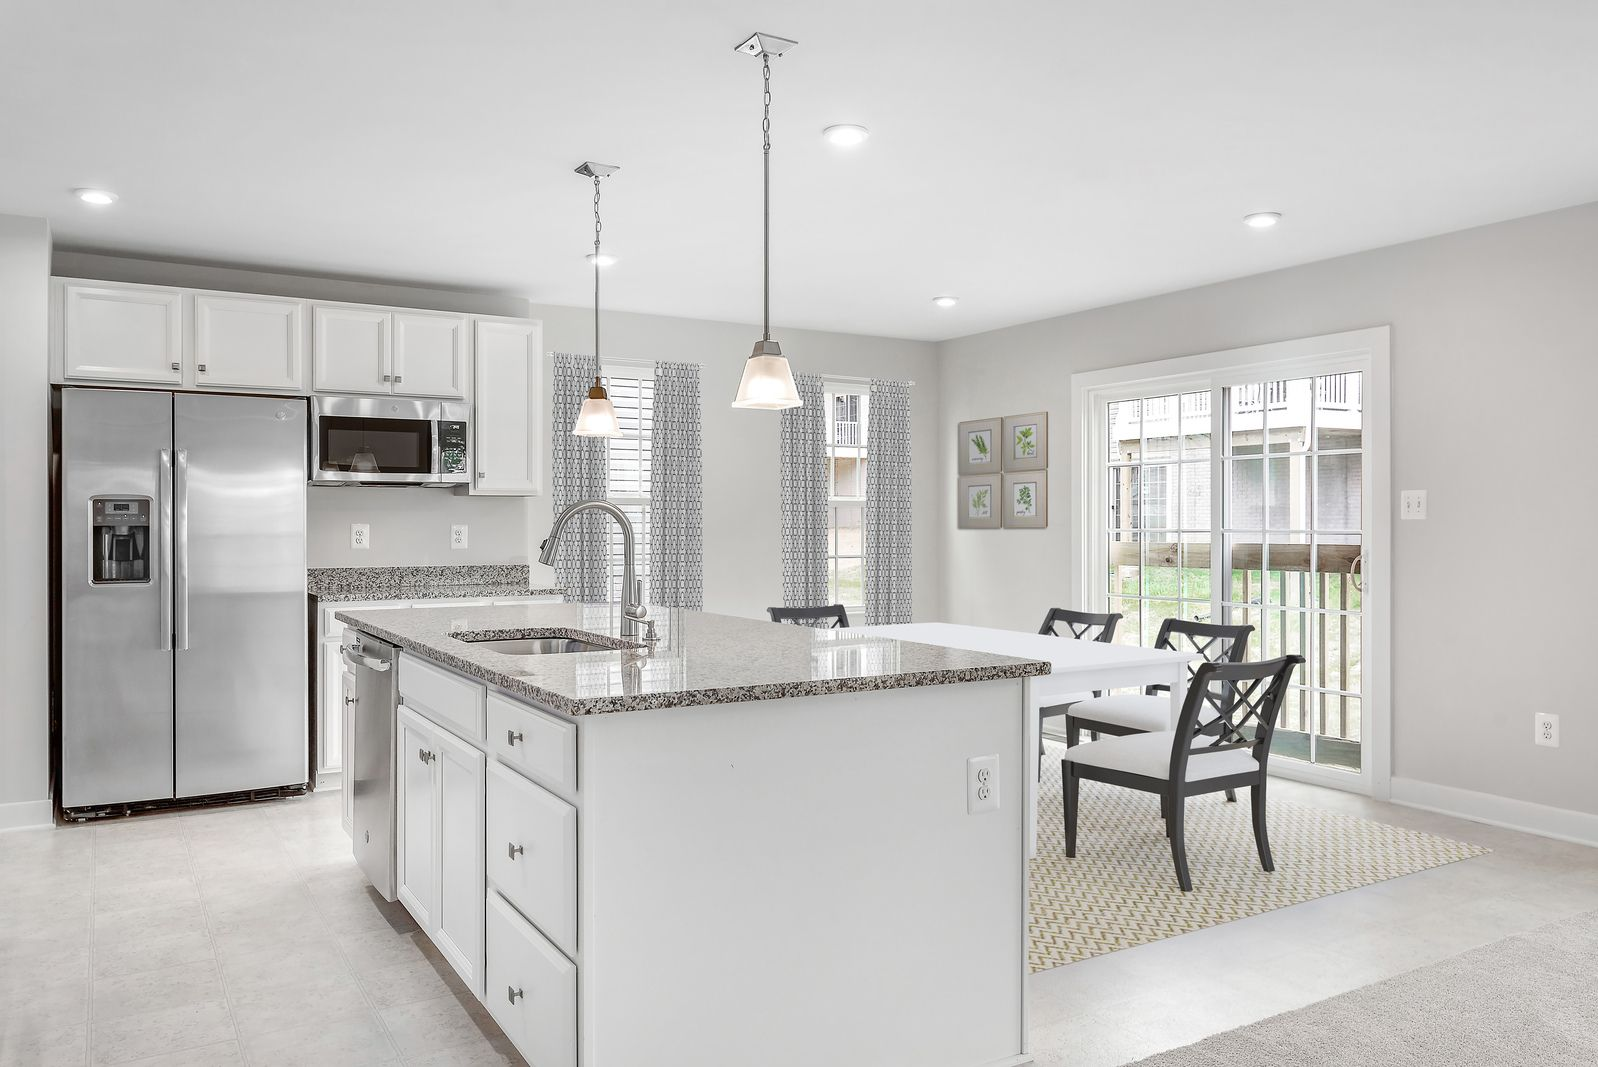 Kitchen featured in the Adrian w/ Finished Basement By Ryan Homes in Dayton-Springfield, OH